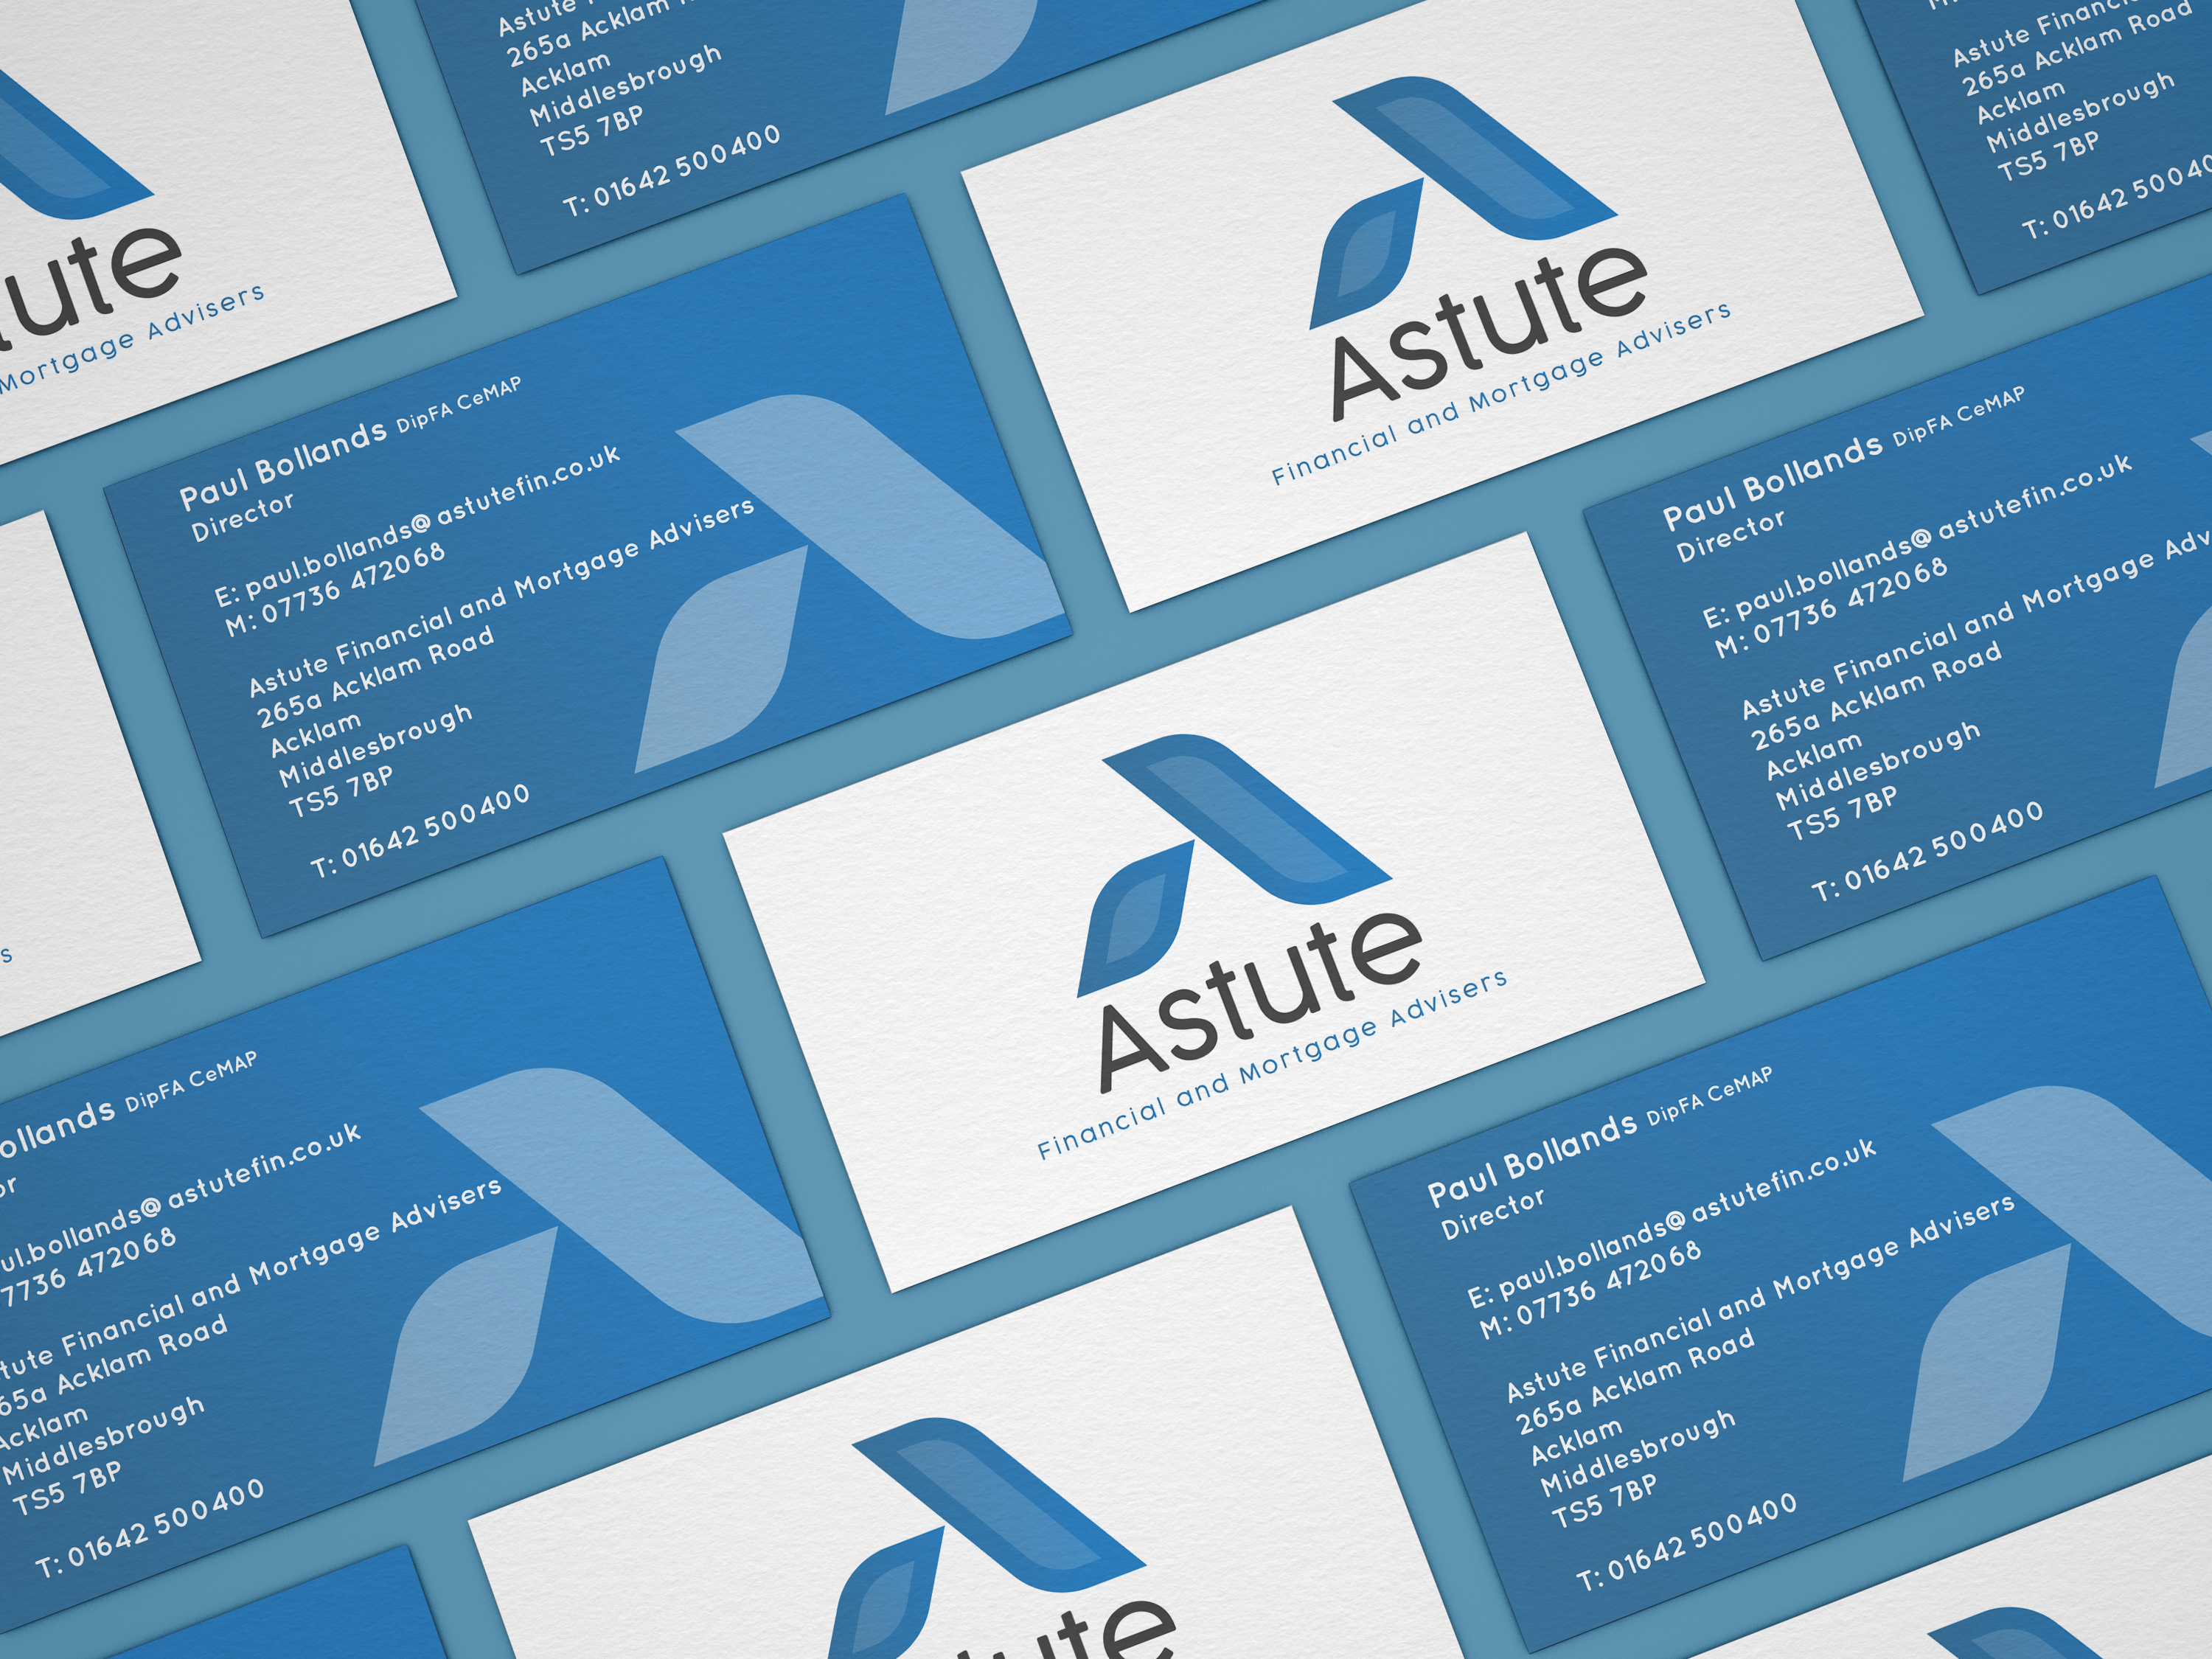 Astute Finance Business Card design